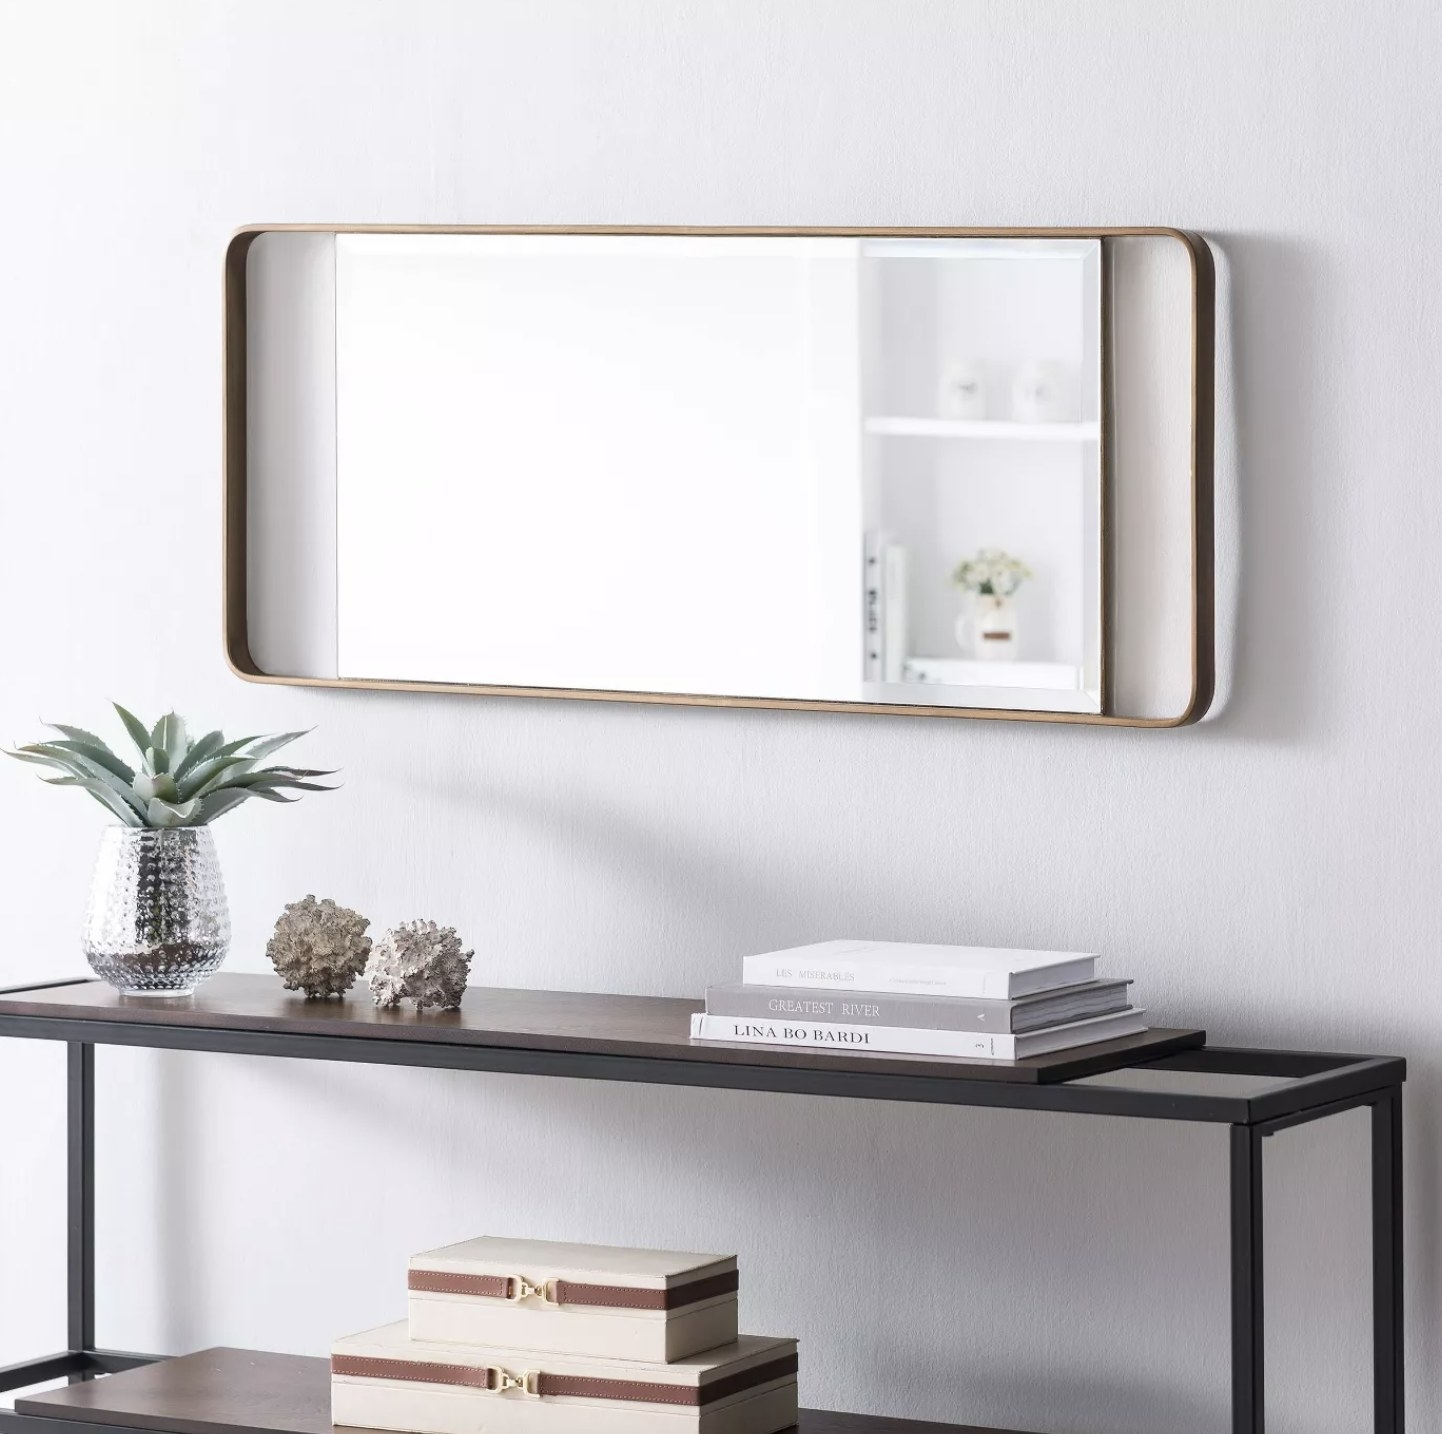 A rectangular leaning mirror with a gold finish hung up on a wall in a home